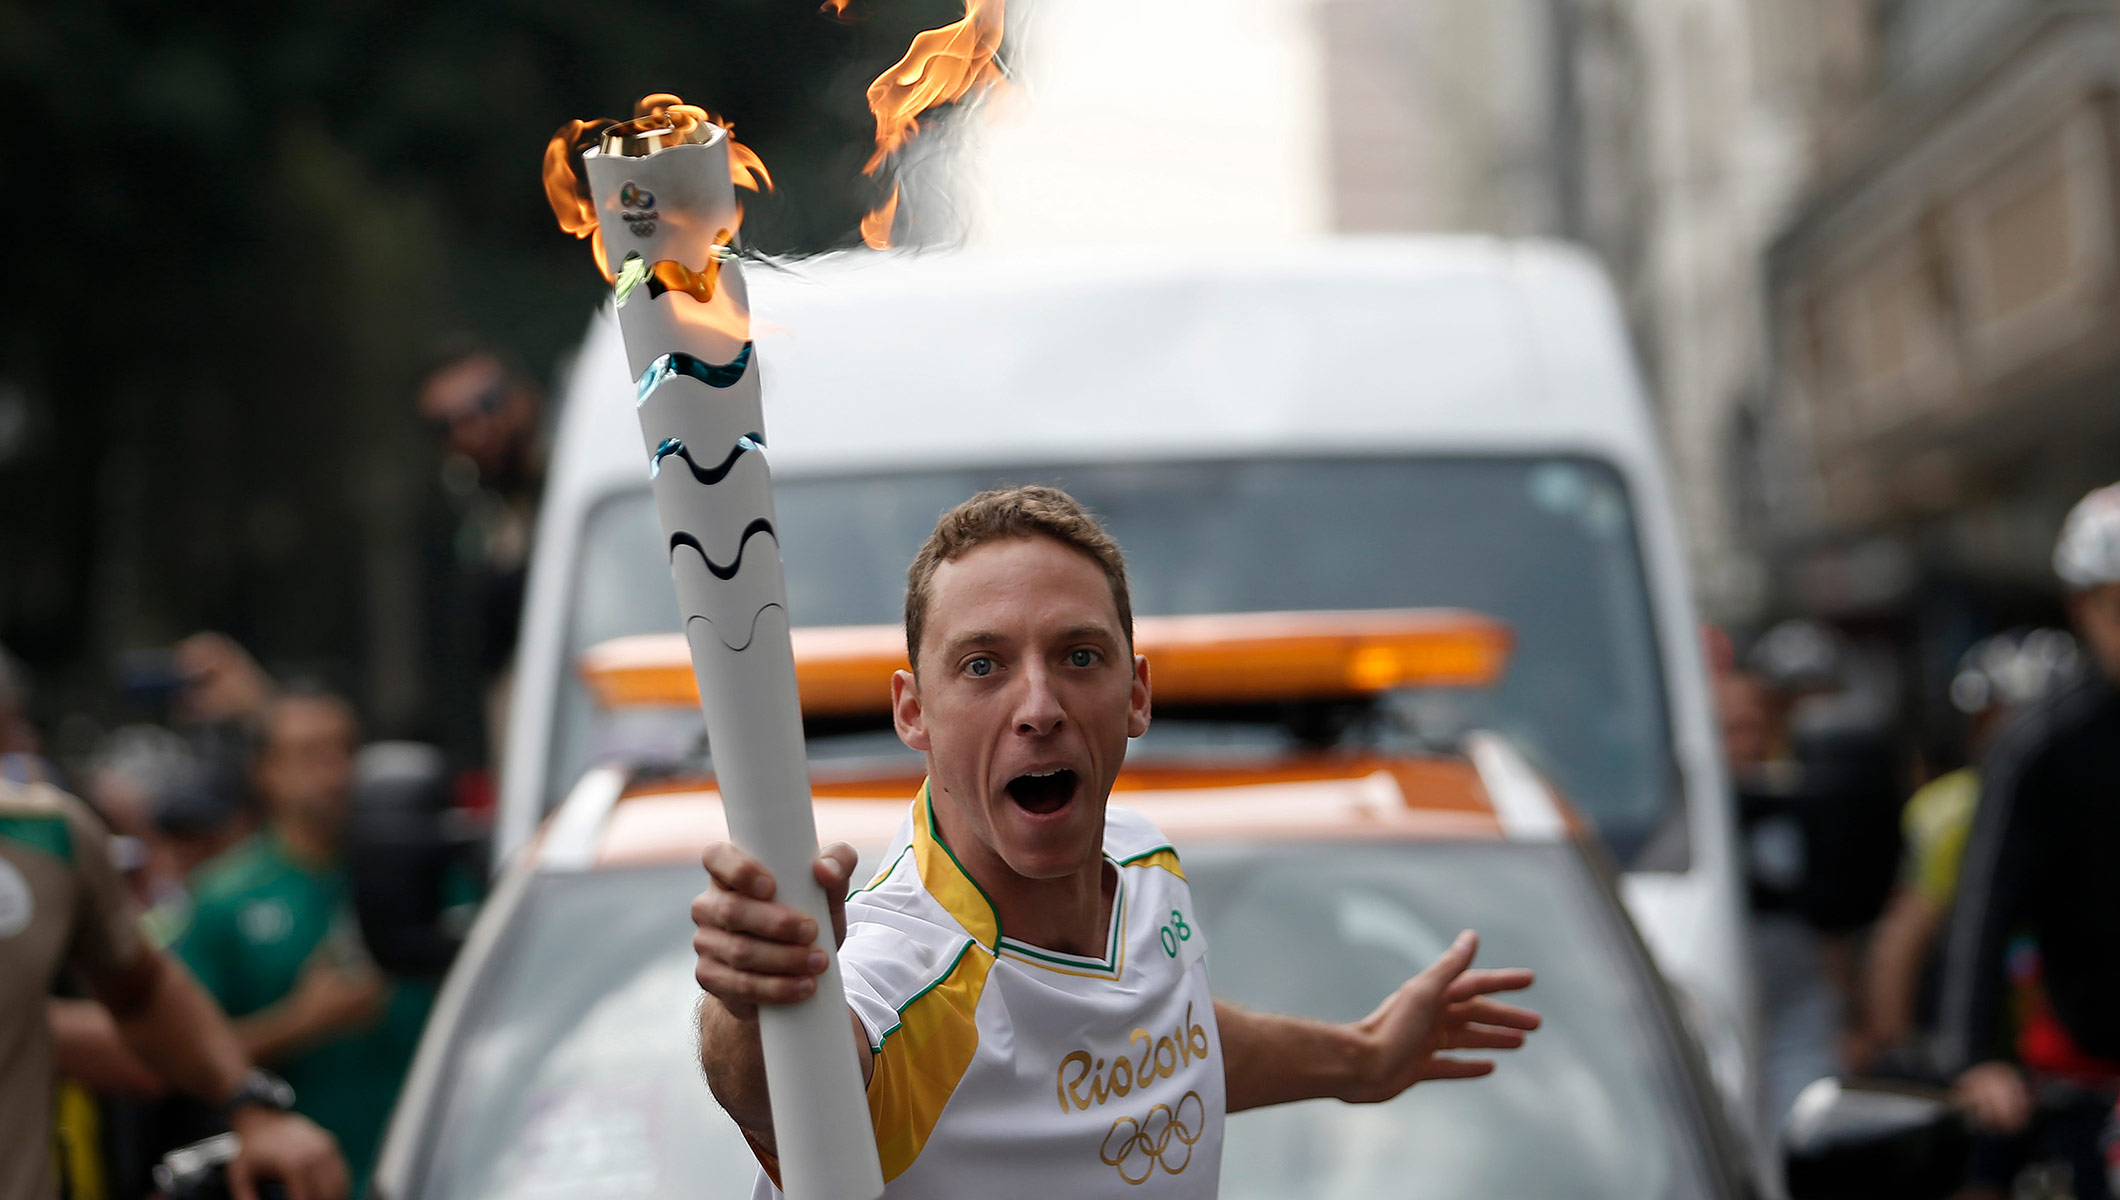 Rio 2016 Olympic Torch Relay - Day 73